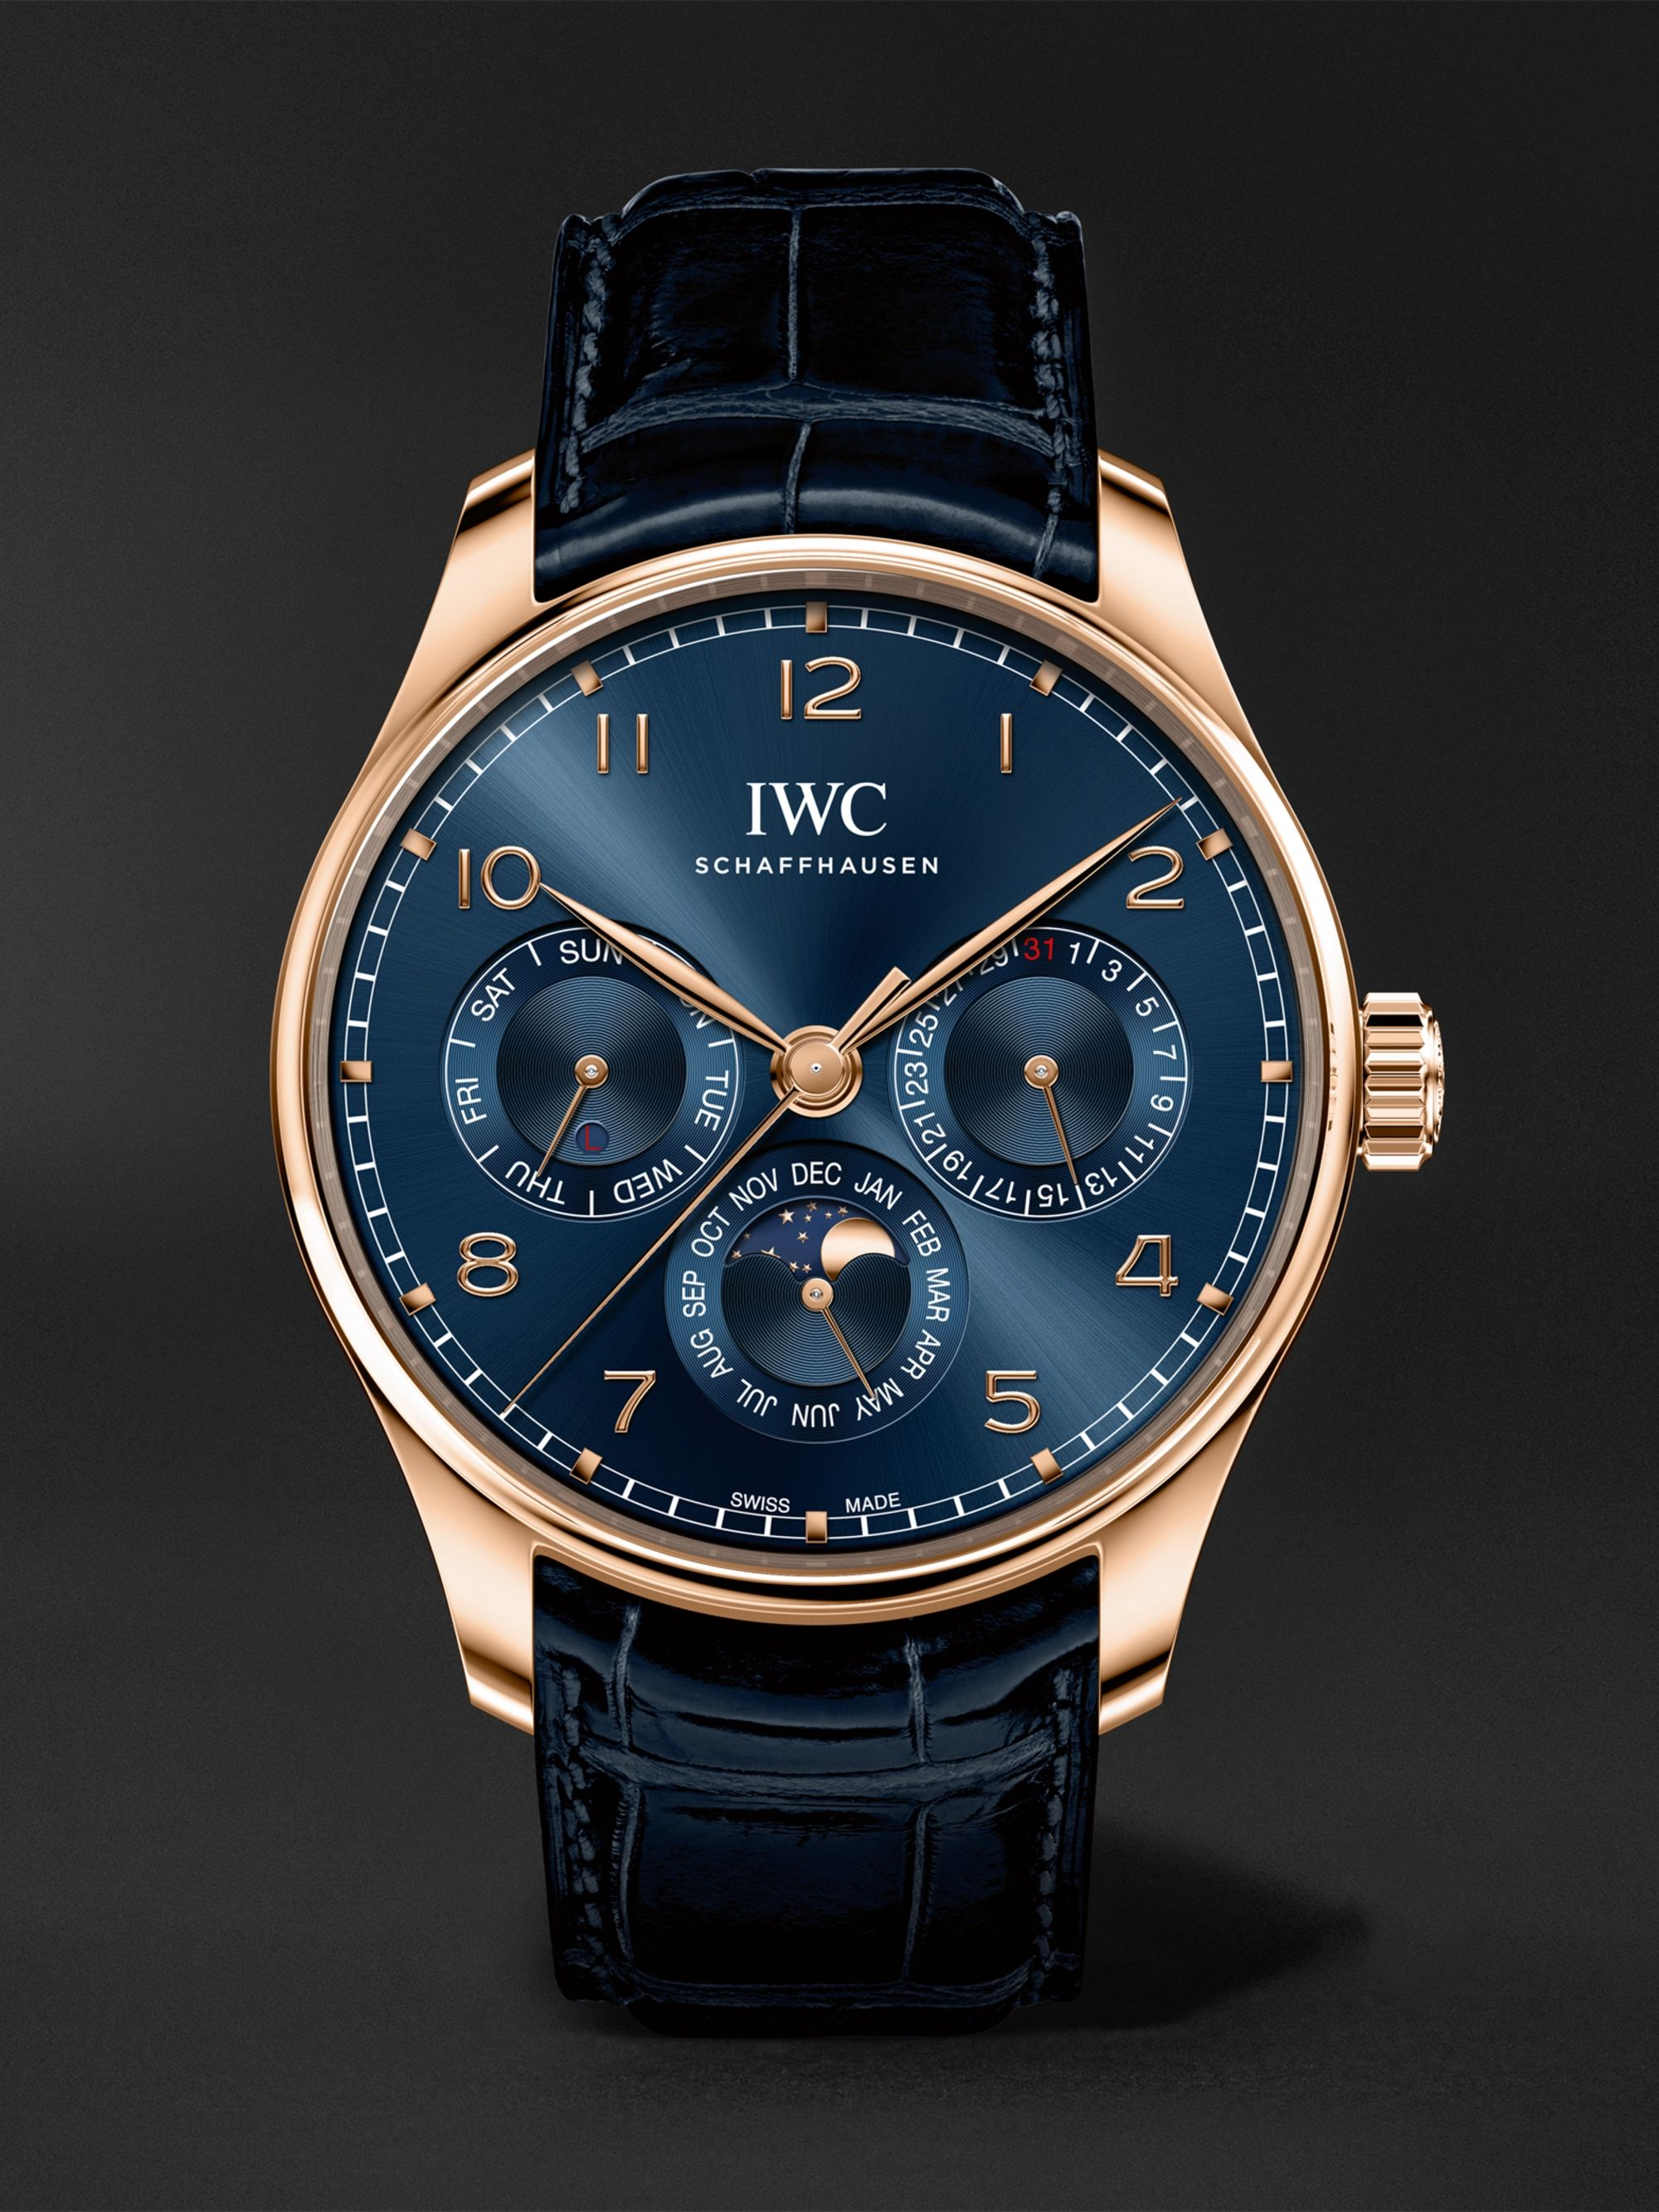 IWC SCHAFFHAUSEN Portugieser Perpetual Calendar Automatic Boutique Edition 42.4mm 18-Karat Gold and Alligator Watch, Ref. No. IW344205